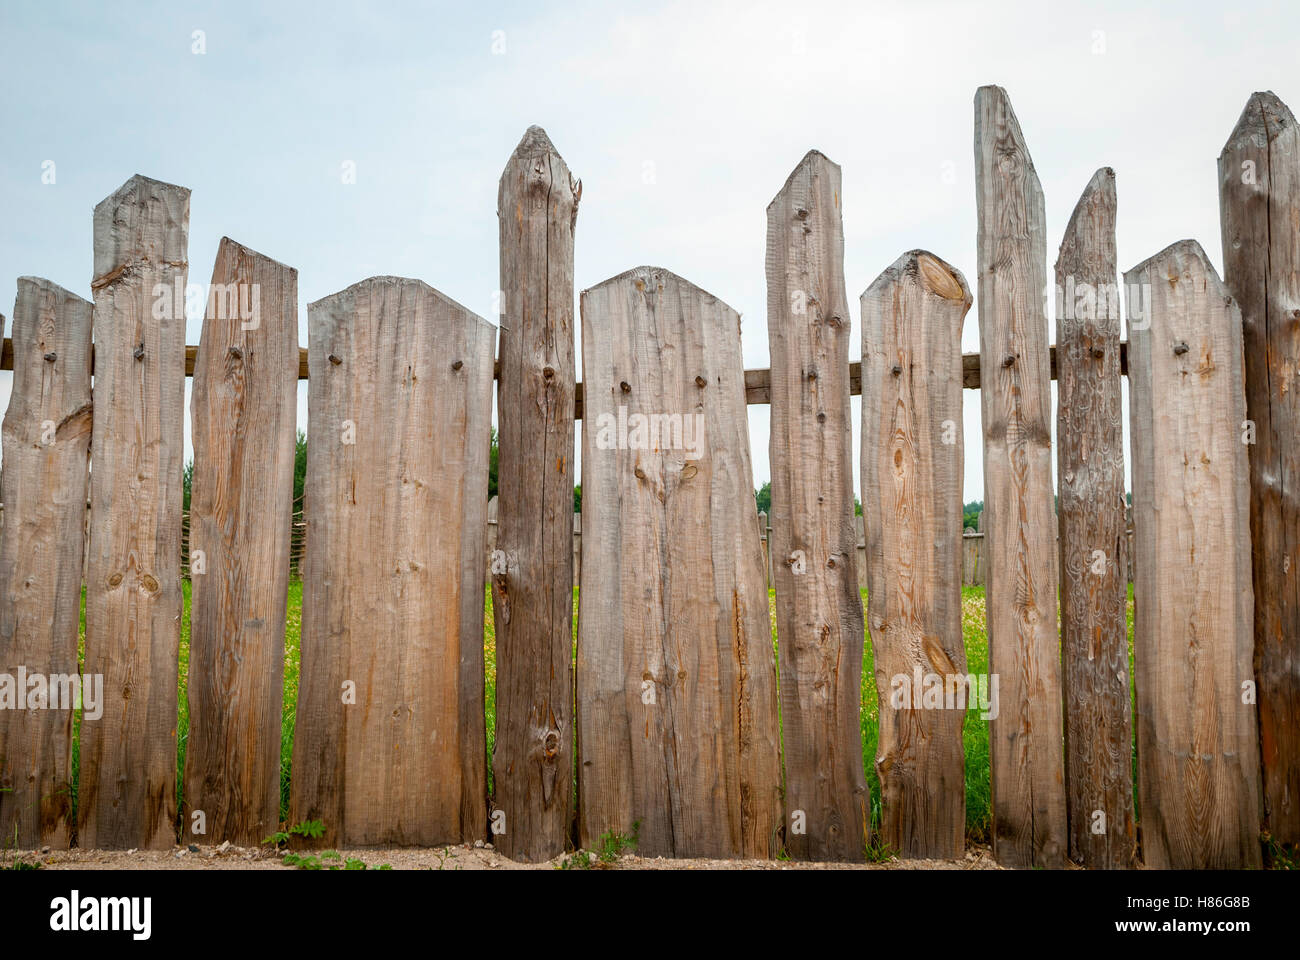 Wooden fence planks - Stock Image